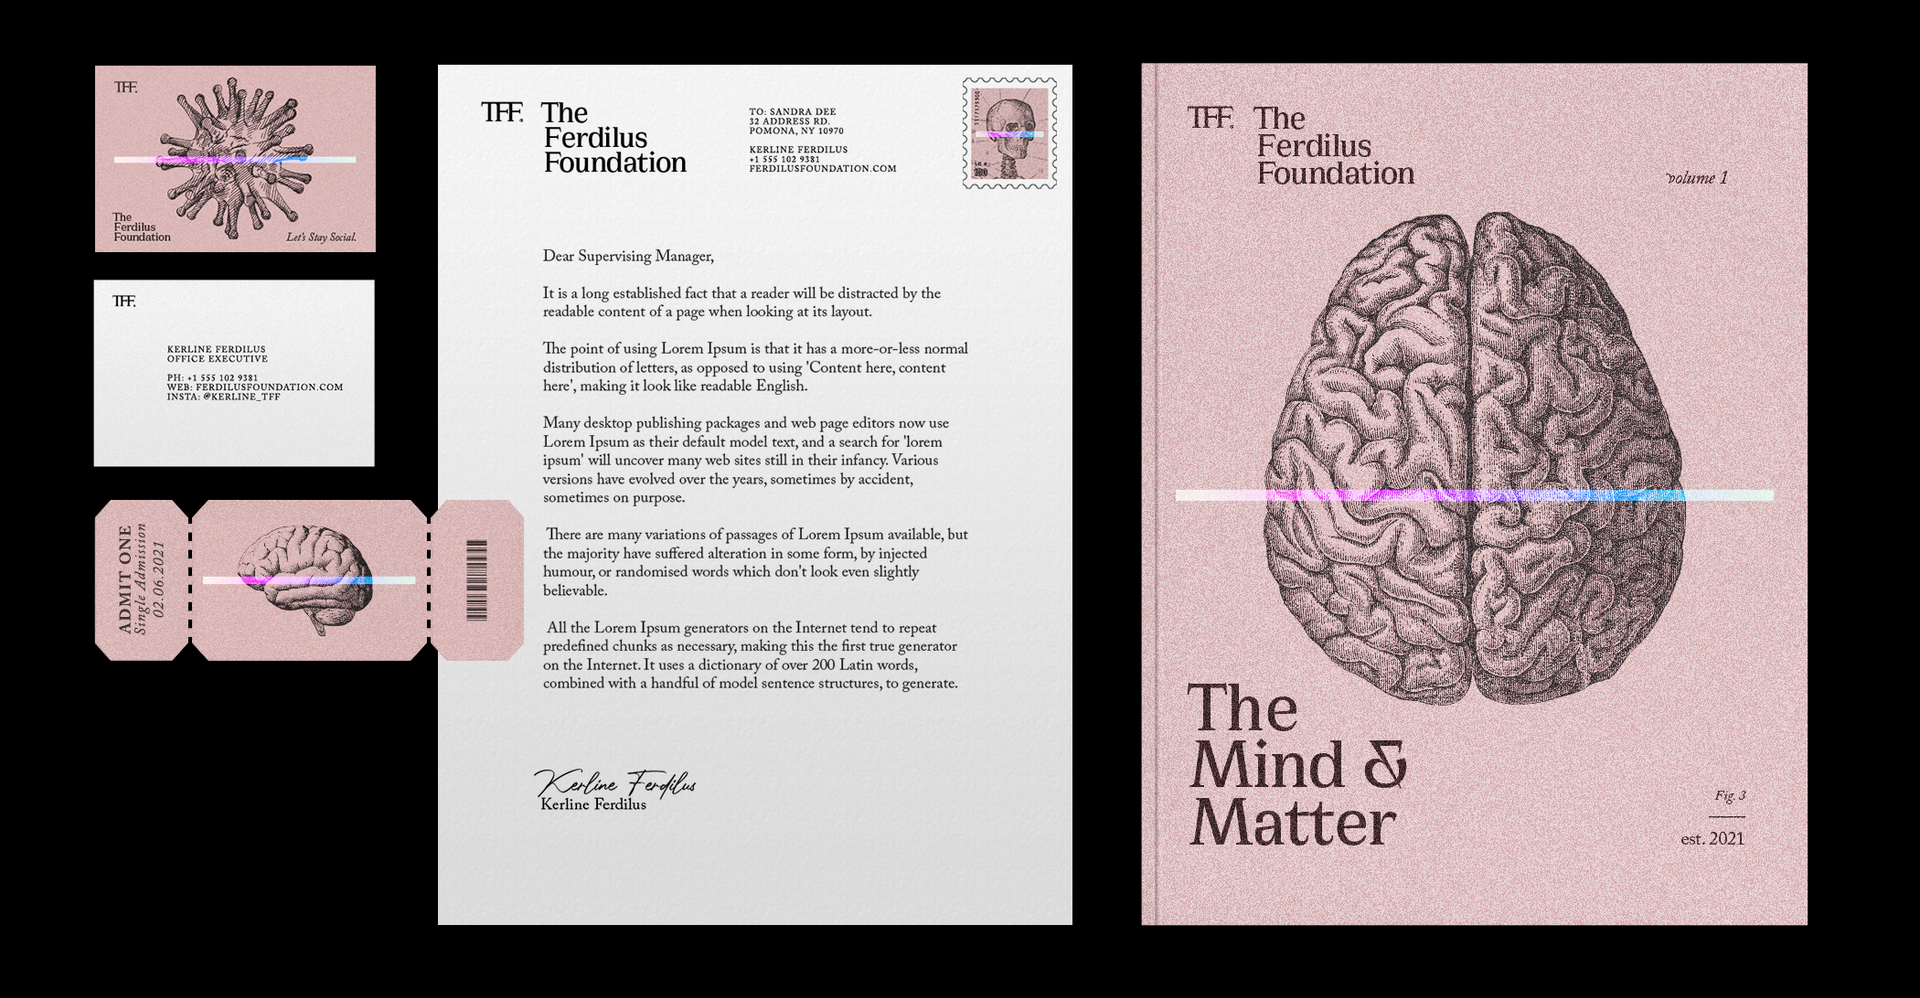 The Ferdilus Foundation Branding2a.png